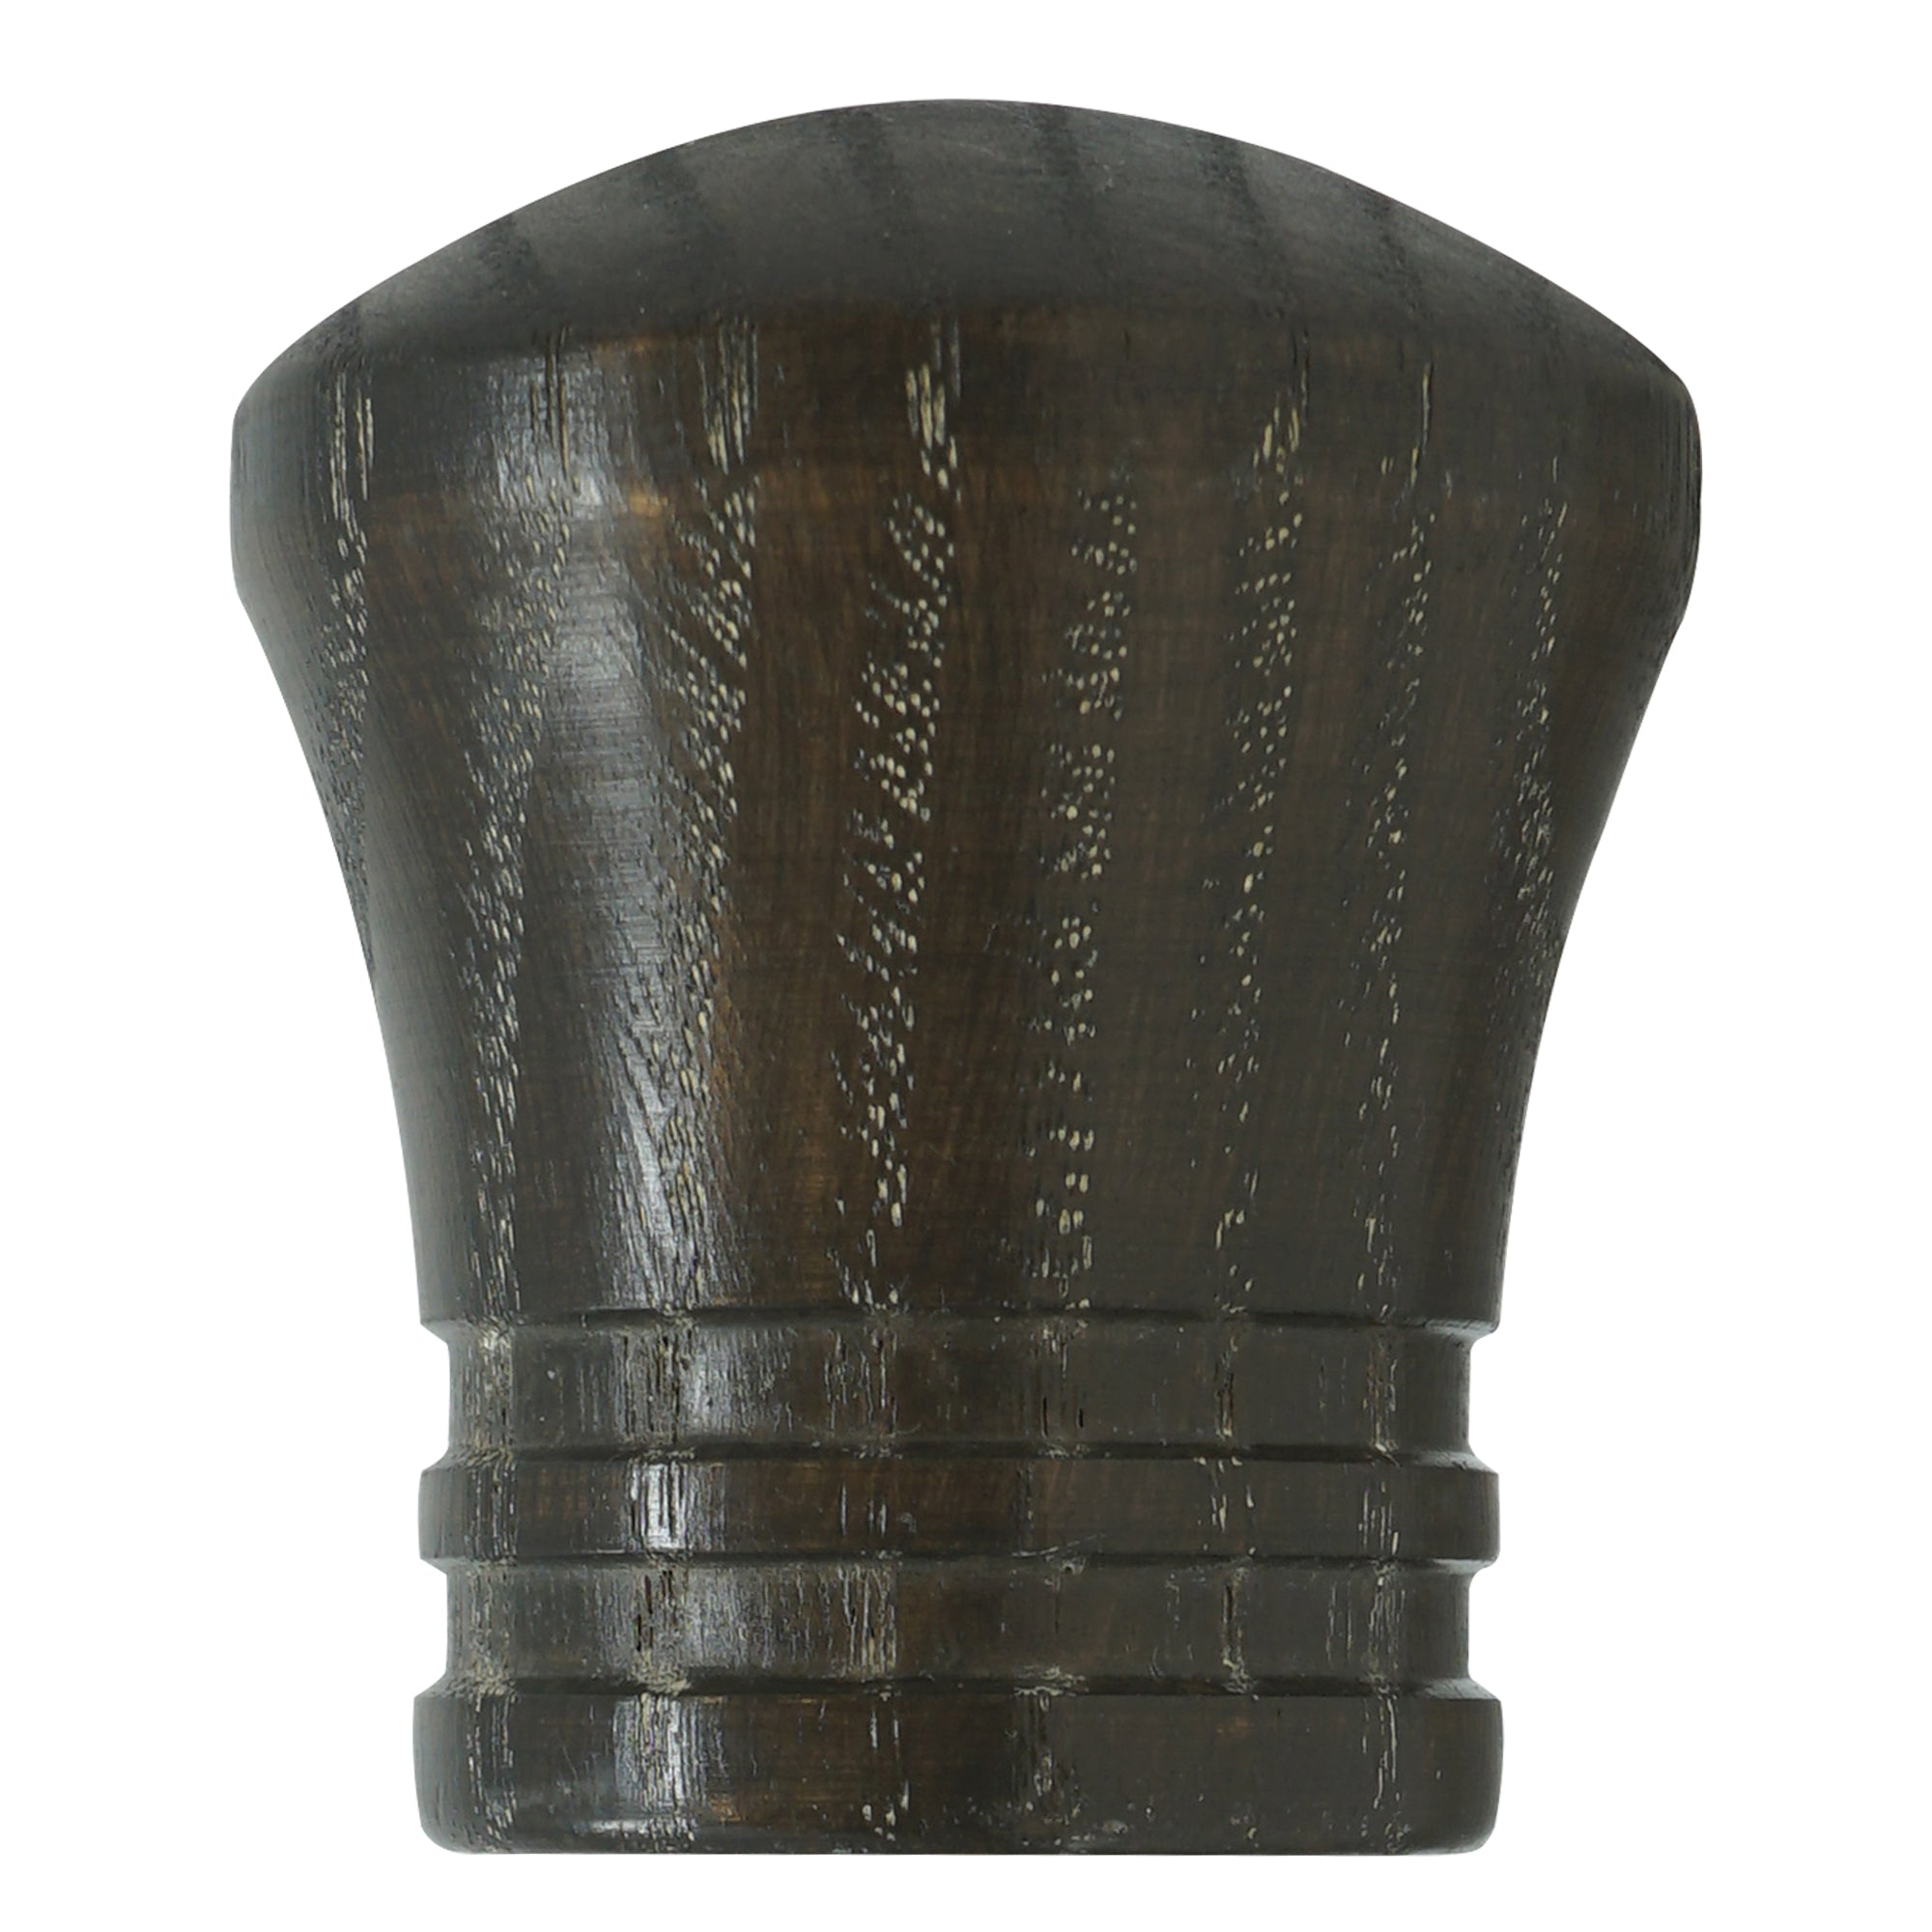 Wood Trumpet Finial - Charcoal Finish